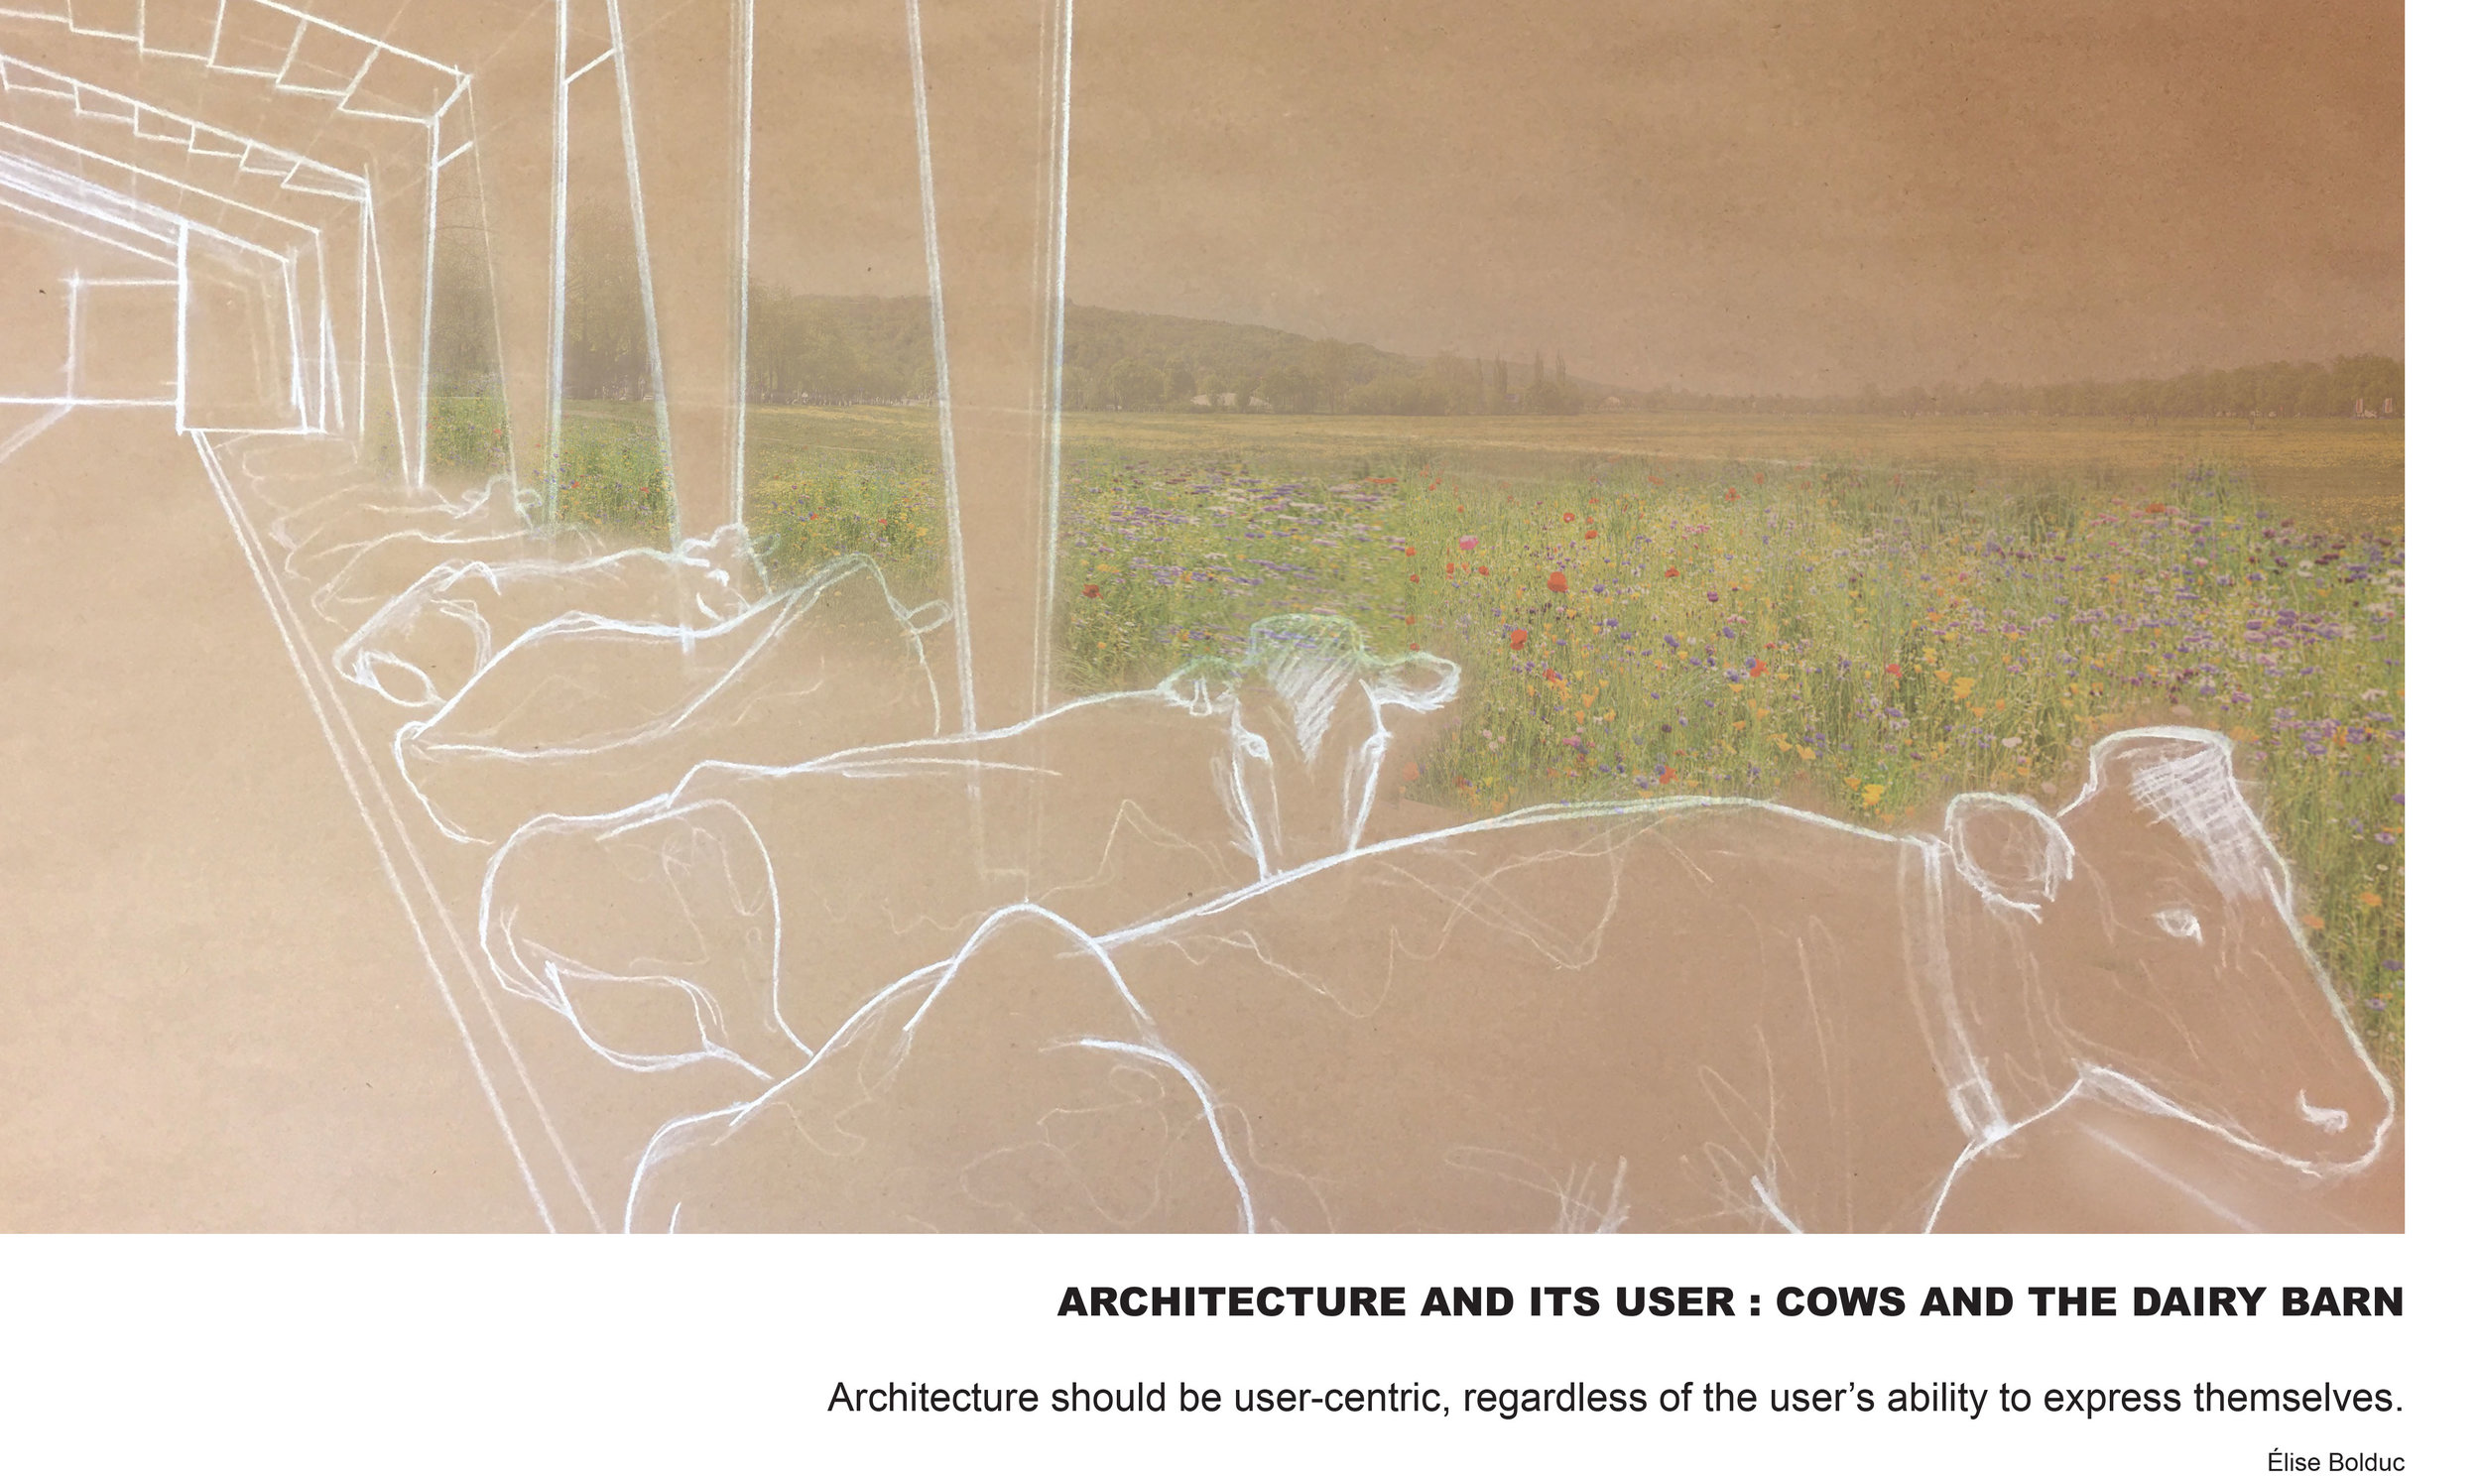 HONOR / UNBUILT STUDENT    Cows and the Dairy Barn    ÉLISE BOLDUC